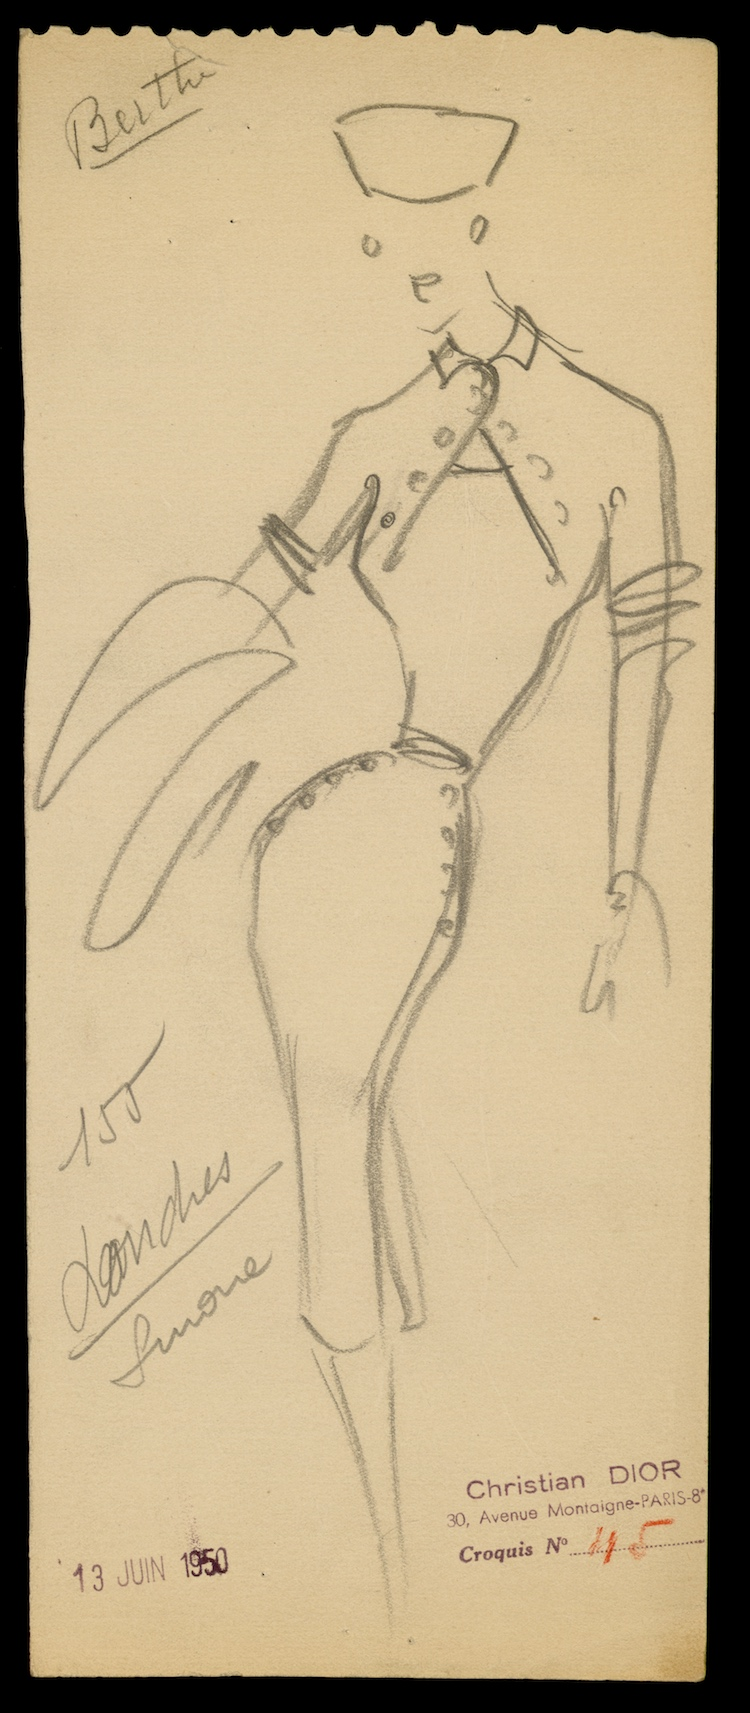 Sketch by Christian Dior for model Londres, Autumn-Winter 1950 Haute Couture collection © Christian Dior.